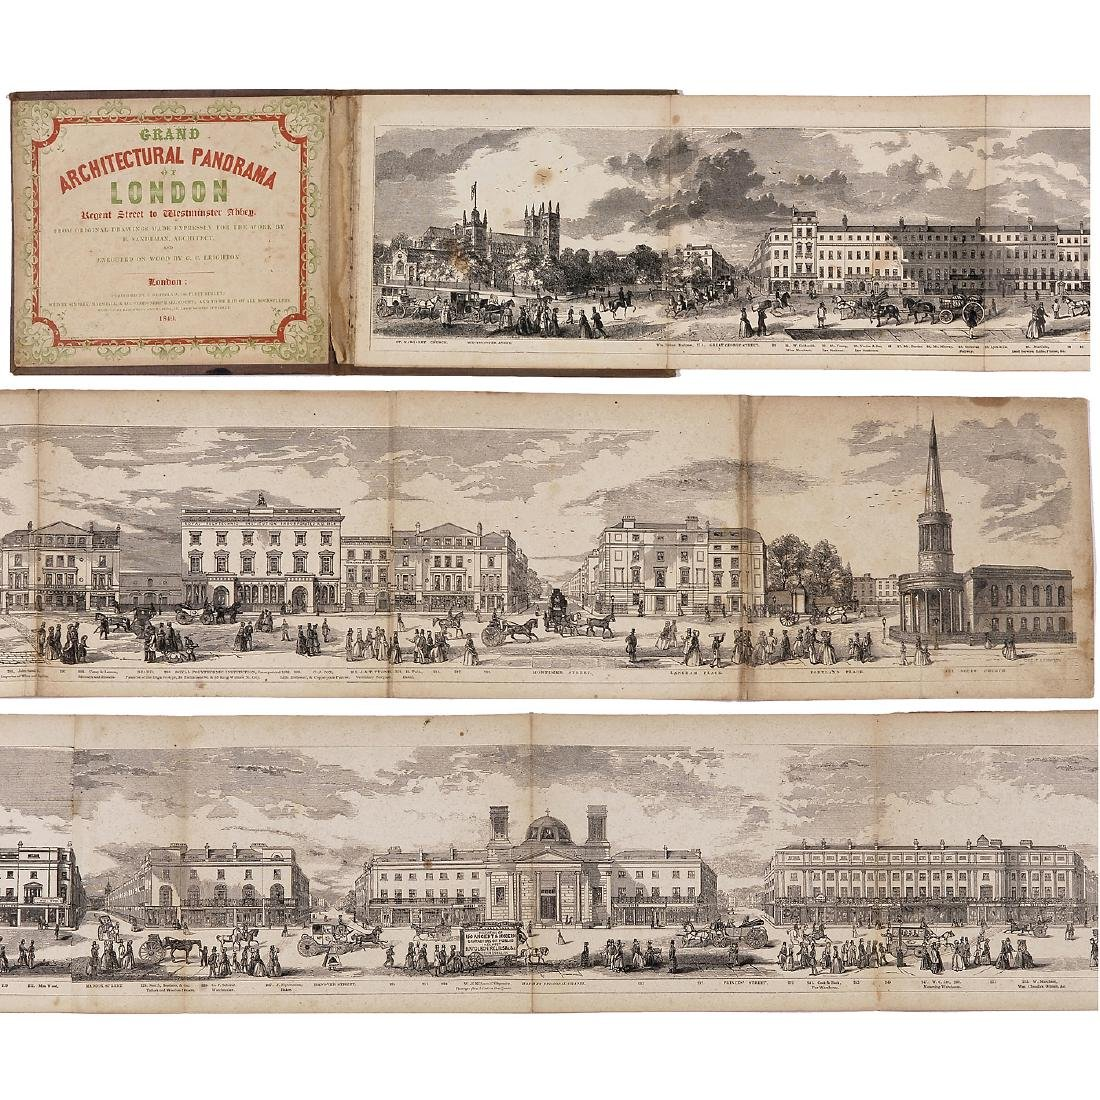 Grand Architectural Panorama of London by R. Sanderson - 2